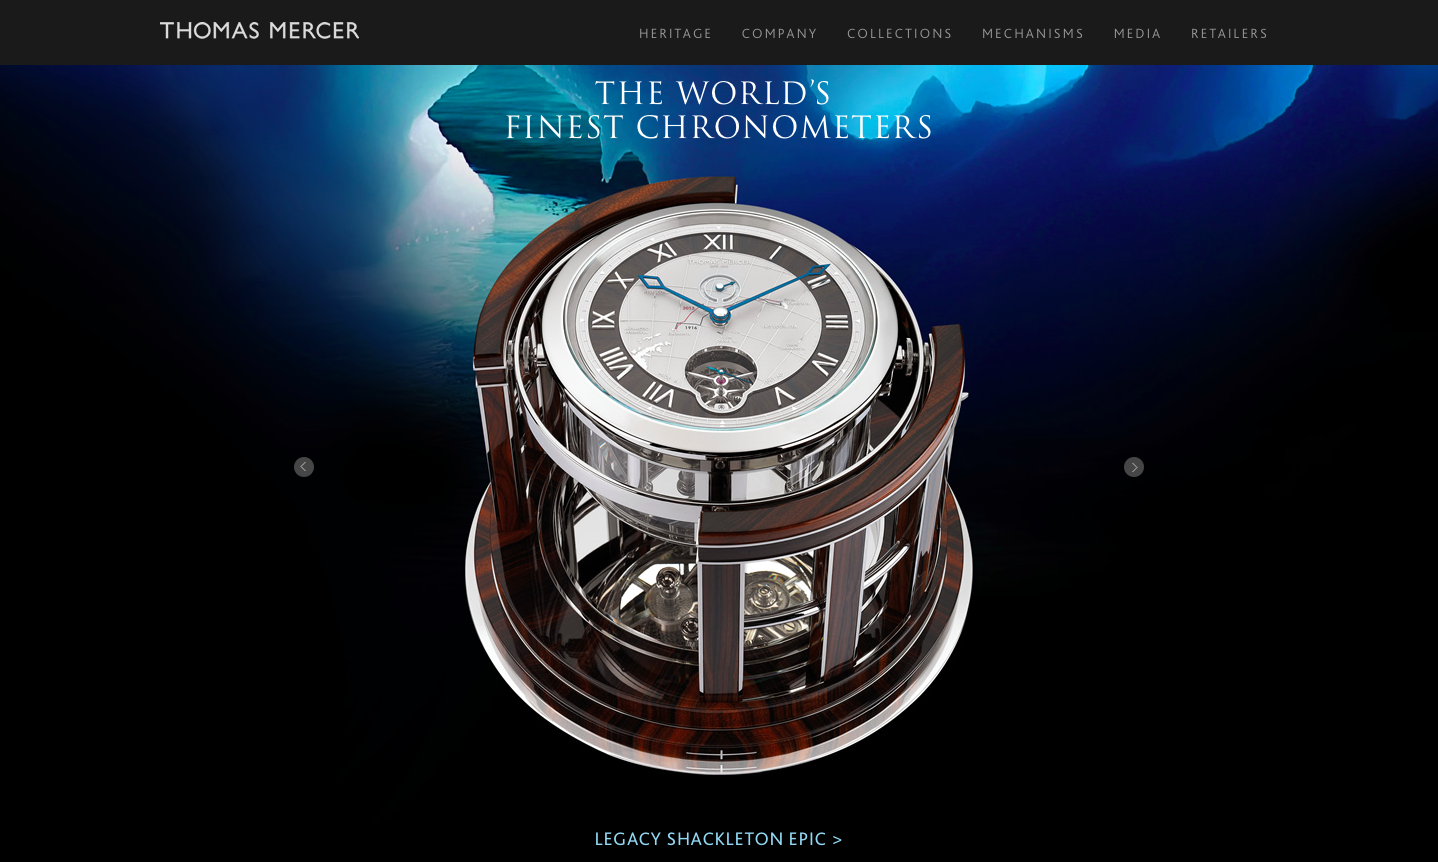 Thomas Mercer Chronometers Launches Illustrious New Website Worthy of its History